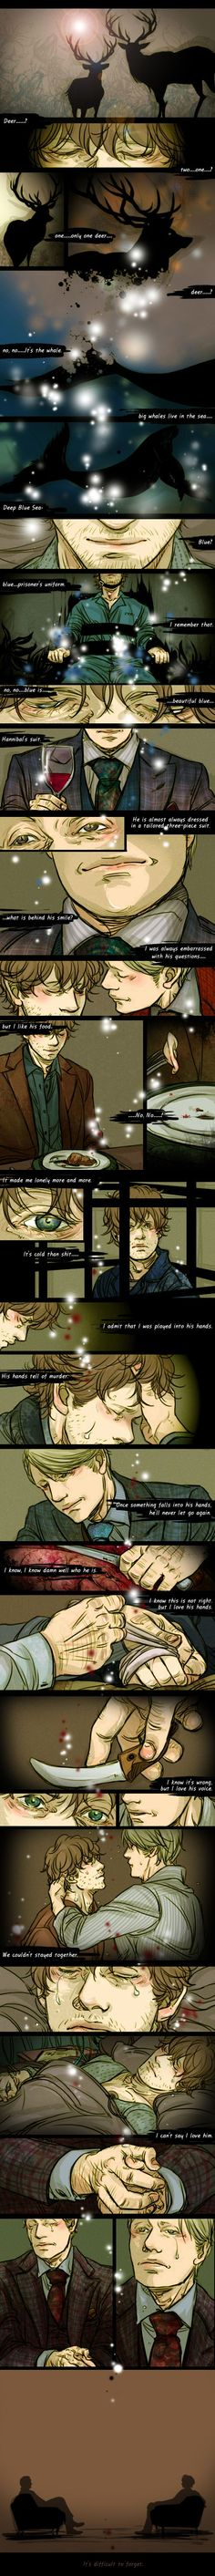 hannigram - tears by young212 this will hunt forever ;-;: